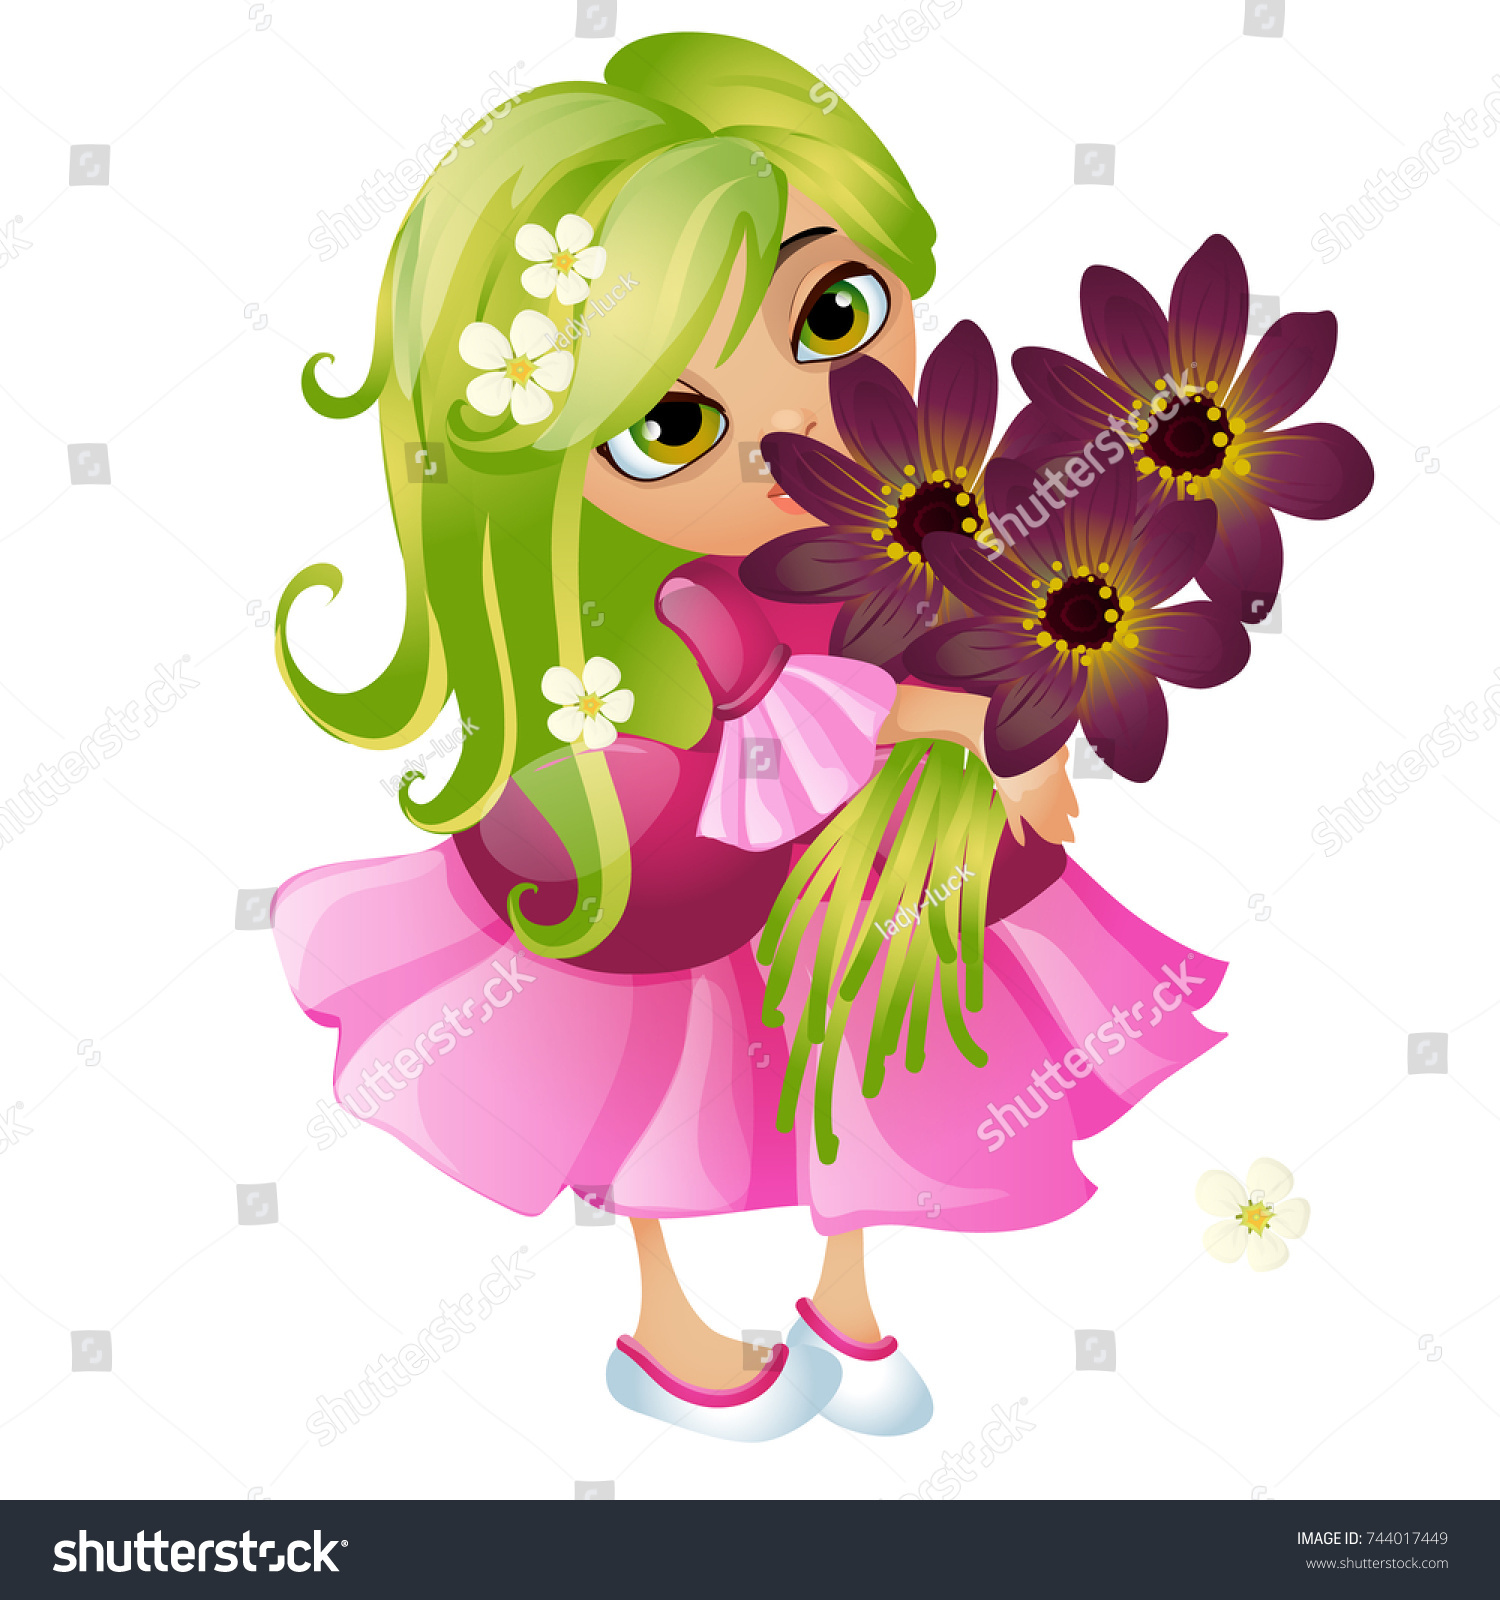 Cute young animated girl green hair stock vector royalty free cute young animated girl with green hair and a bouquet of flowers isolated on white background izmirmasajfo